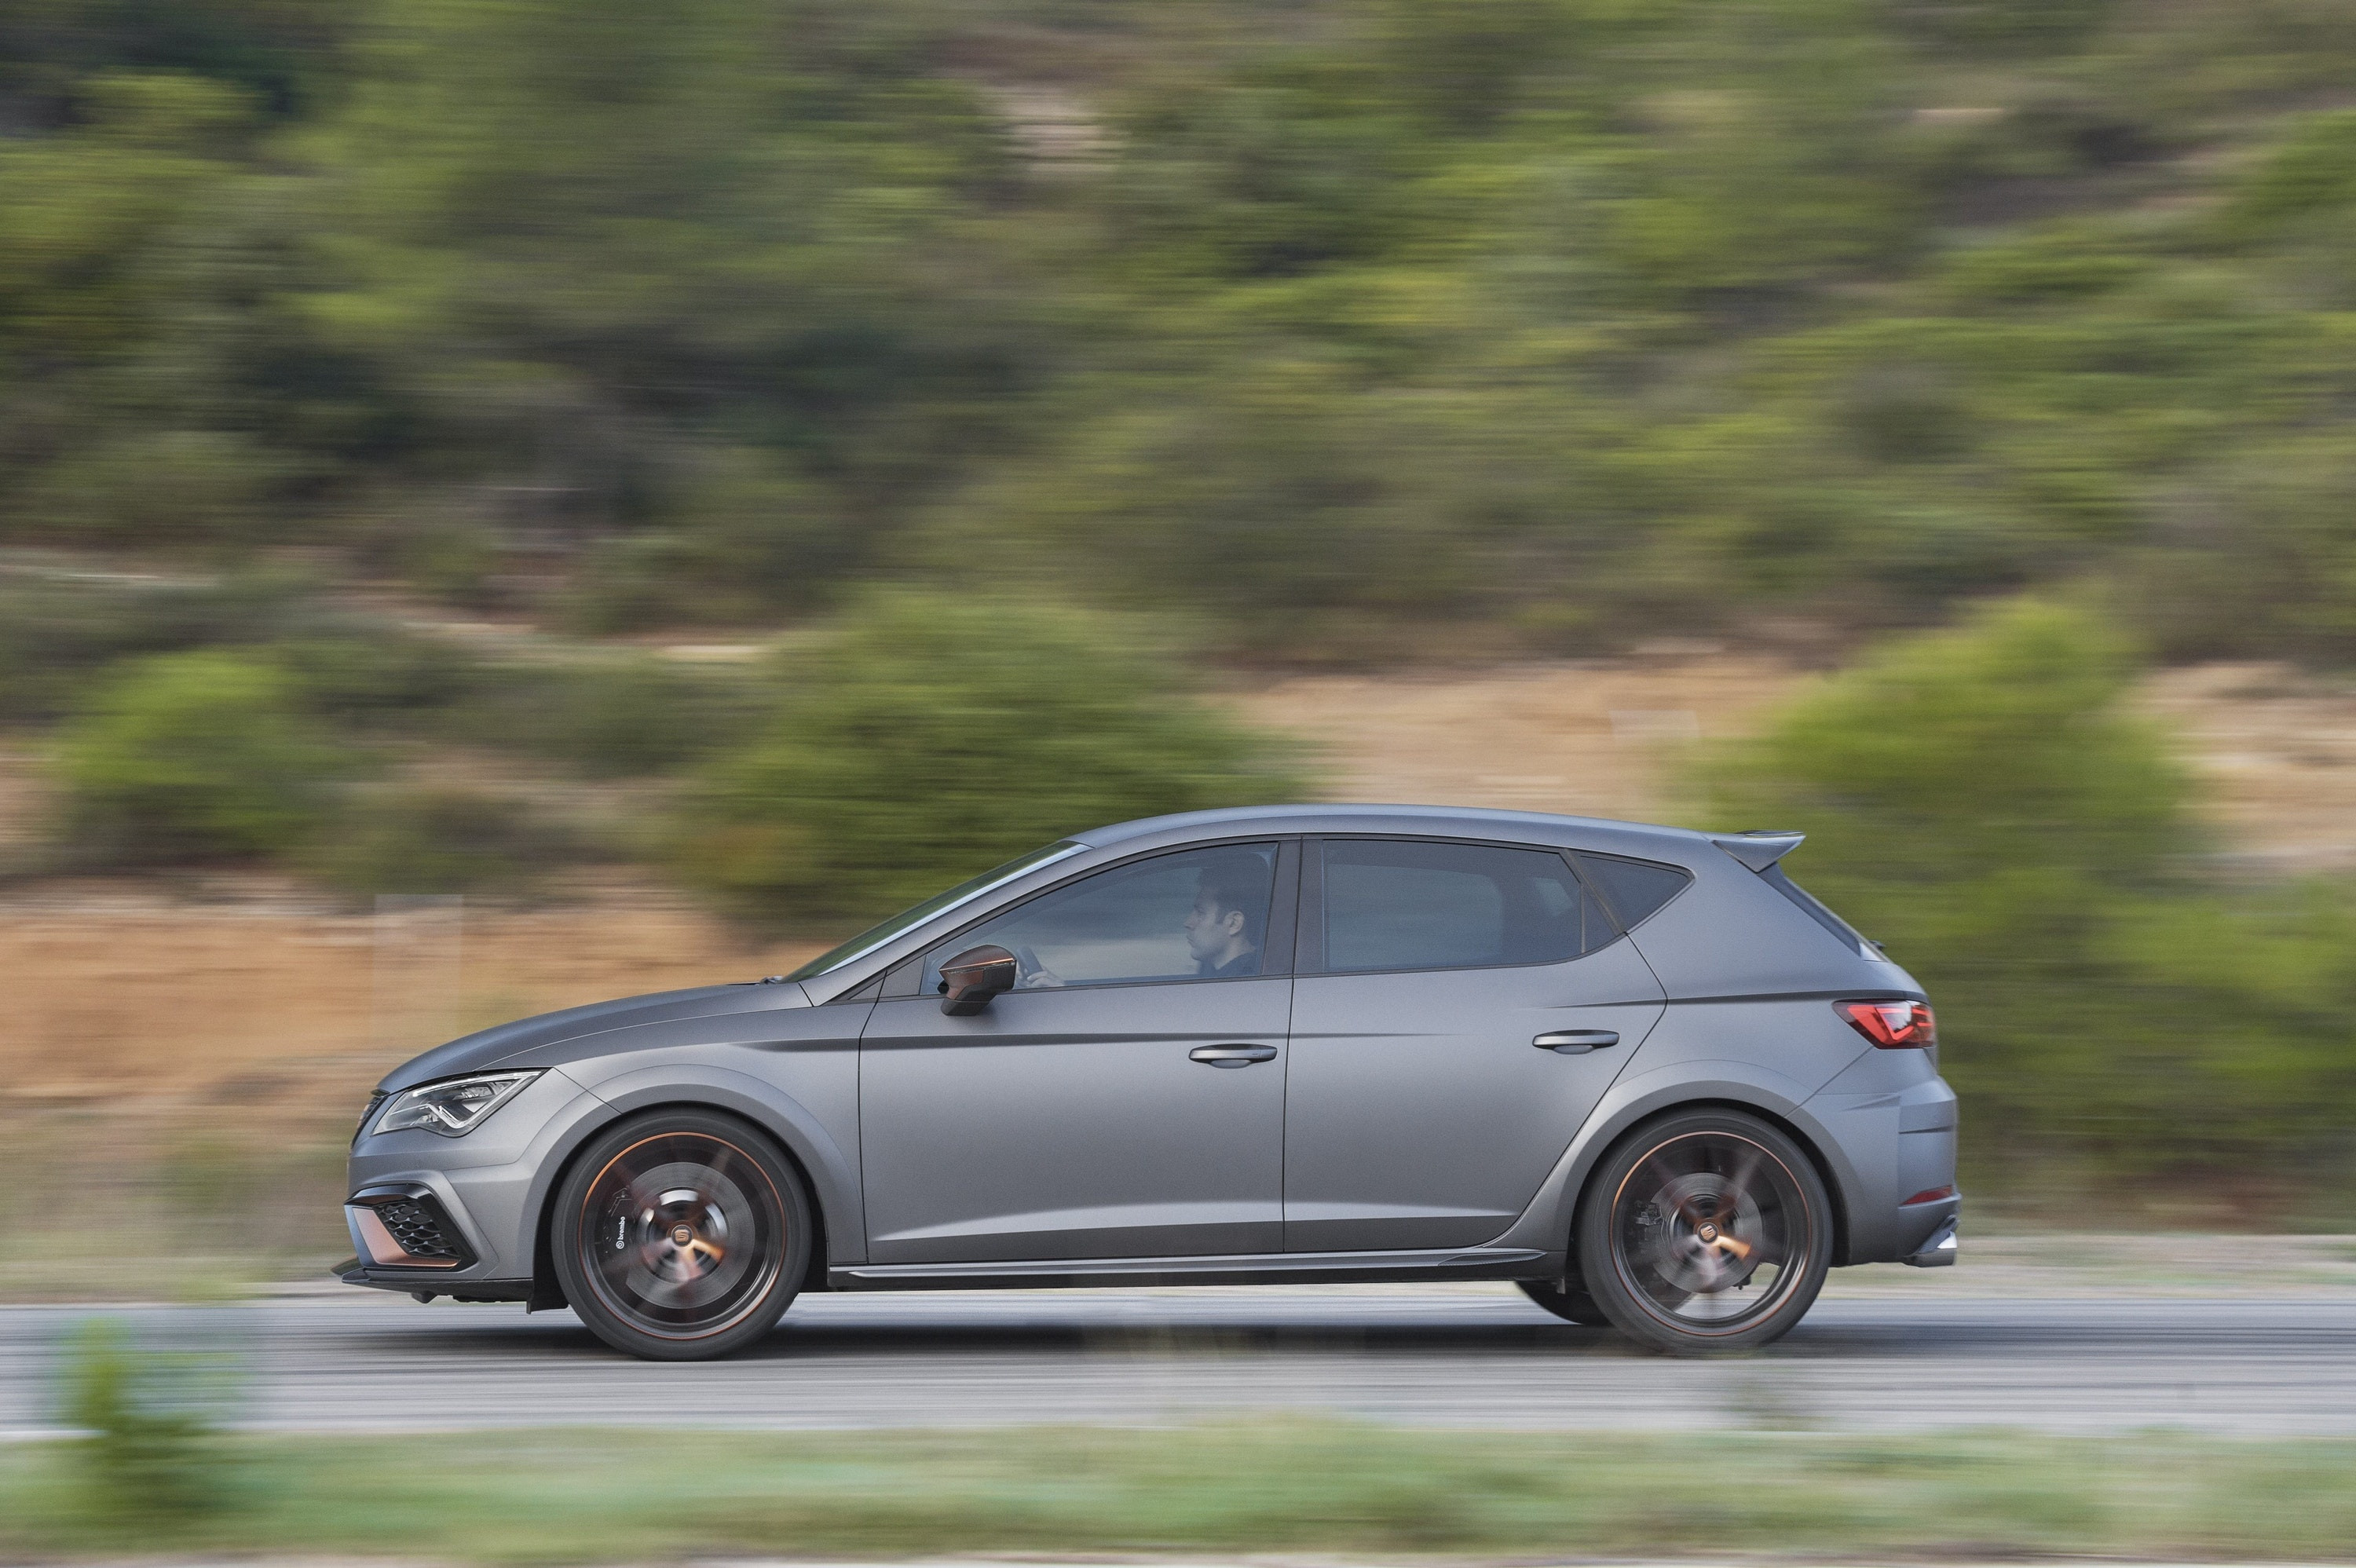 Grey SEAT Leon Cupra from the side driving along a road